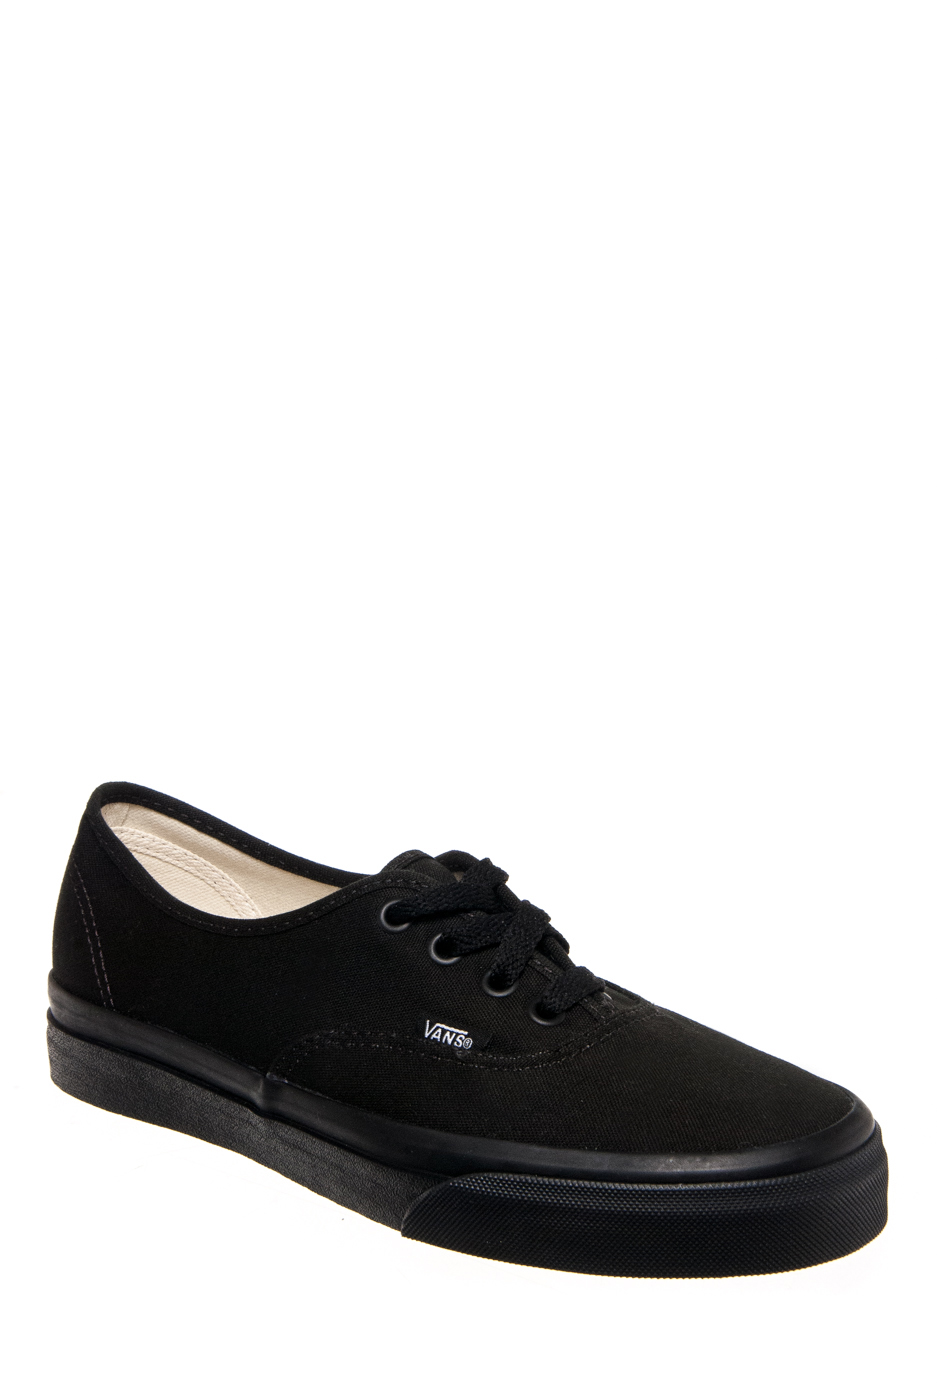 Vans Unisex Authentic Low Top Sneakers - Black / Black